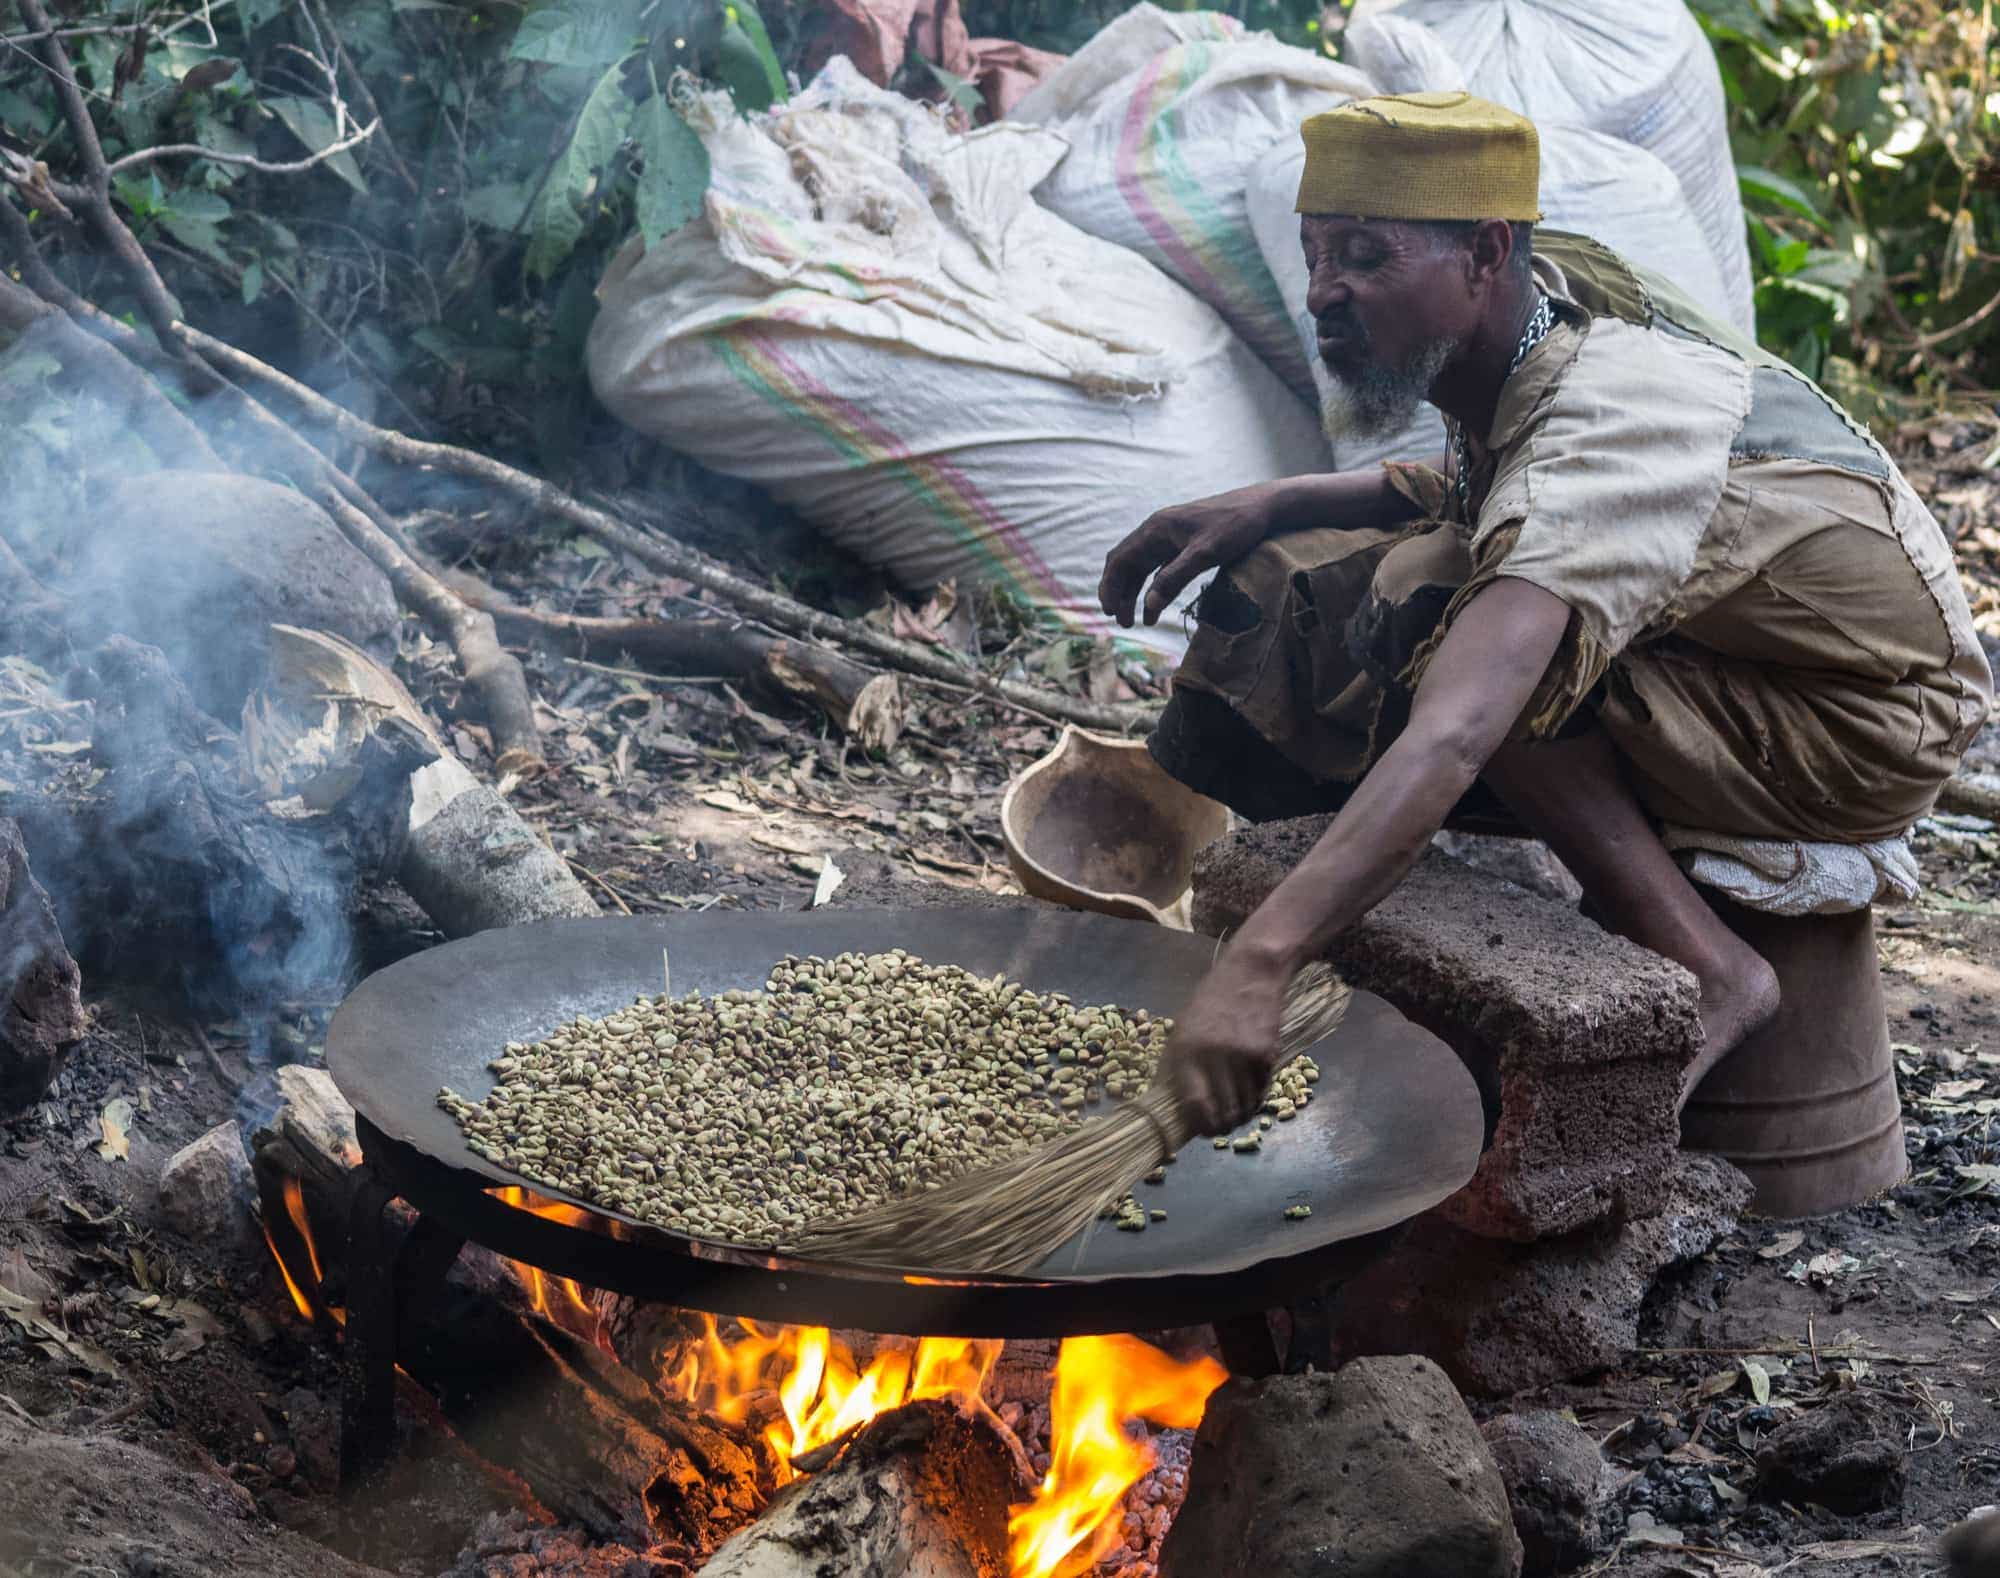 Roasting coffee beans in the ethiopian way